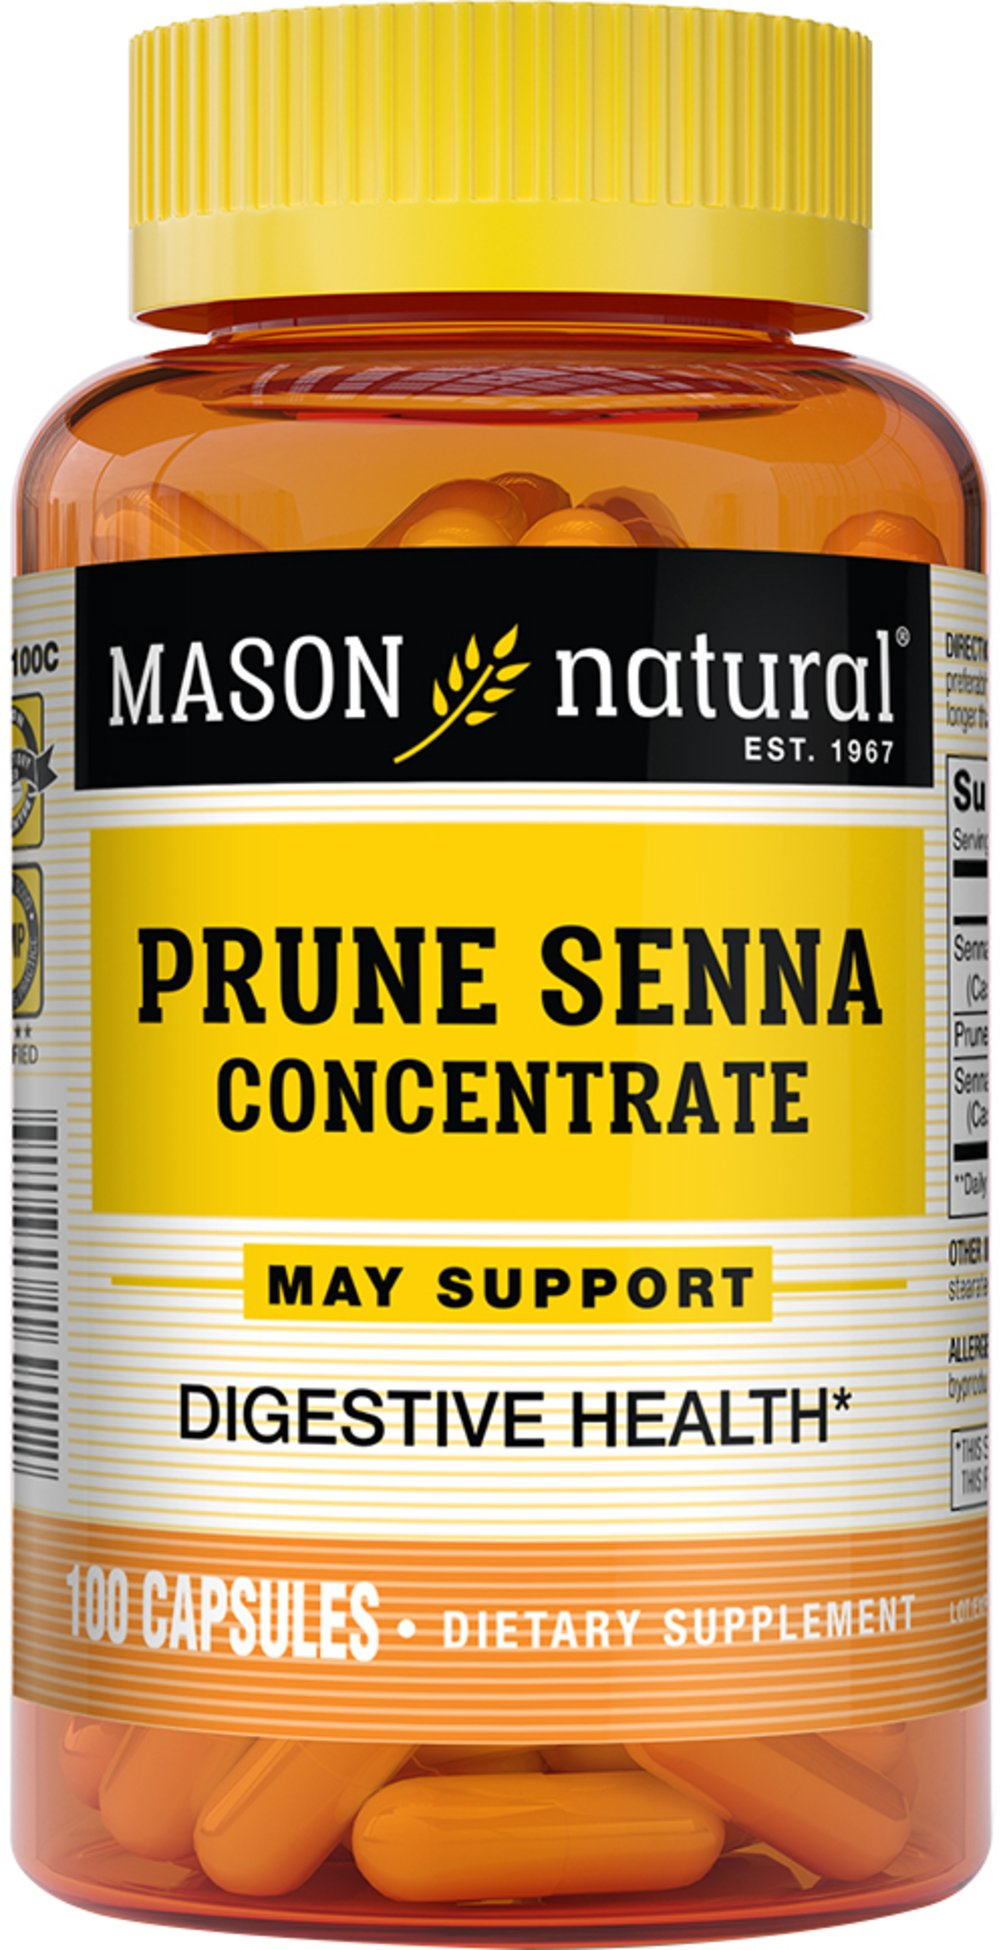 Prune Senna Concentrate